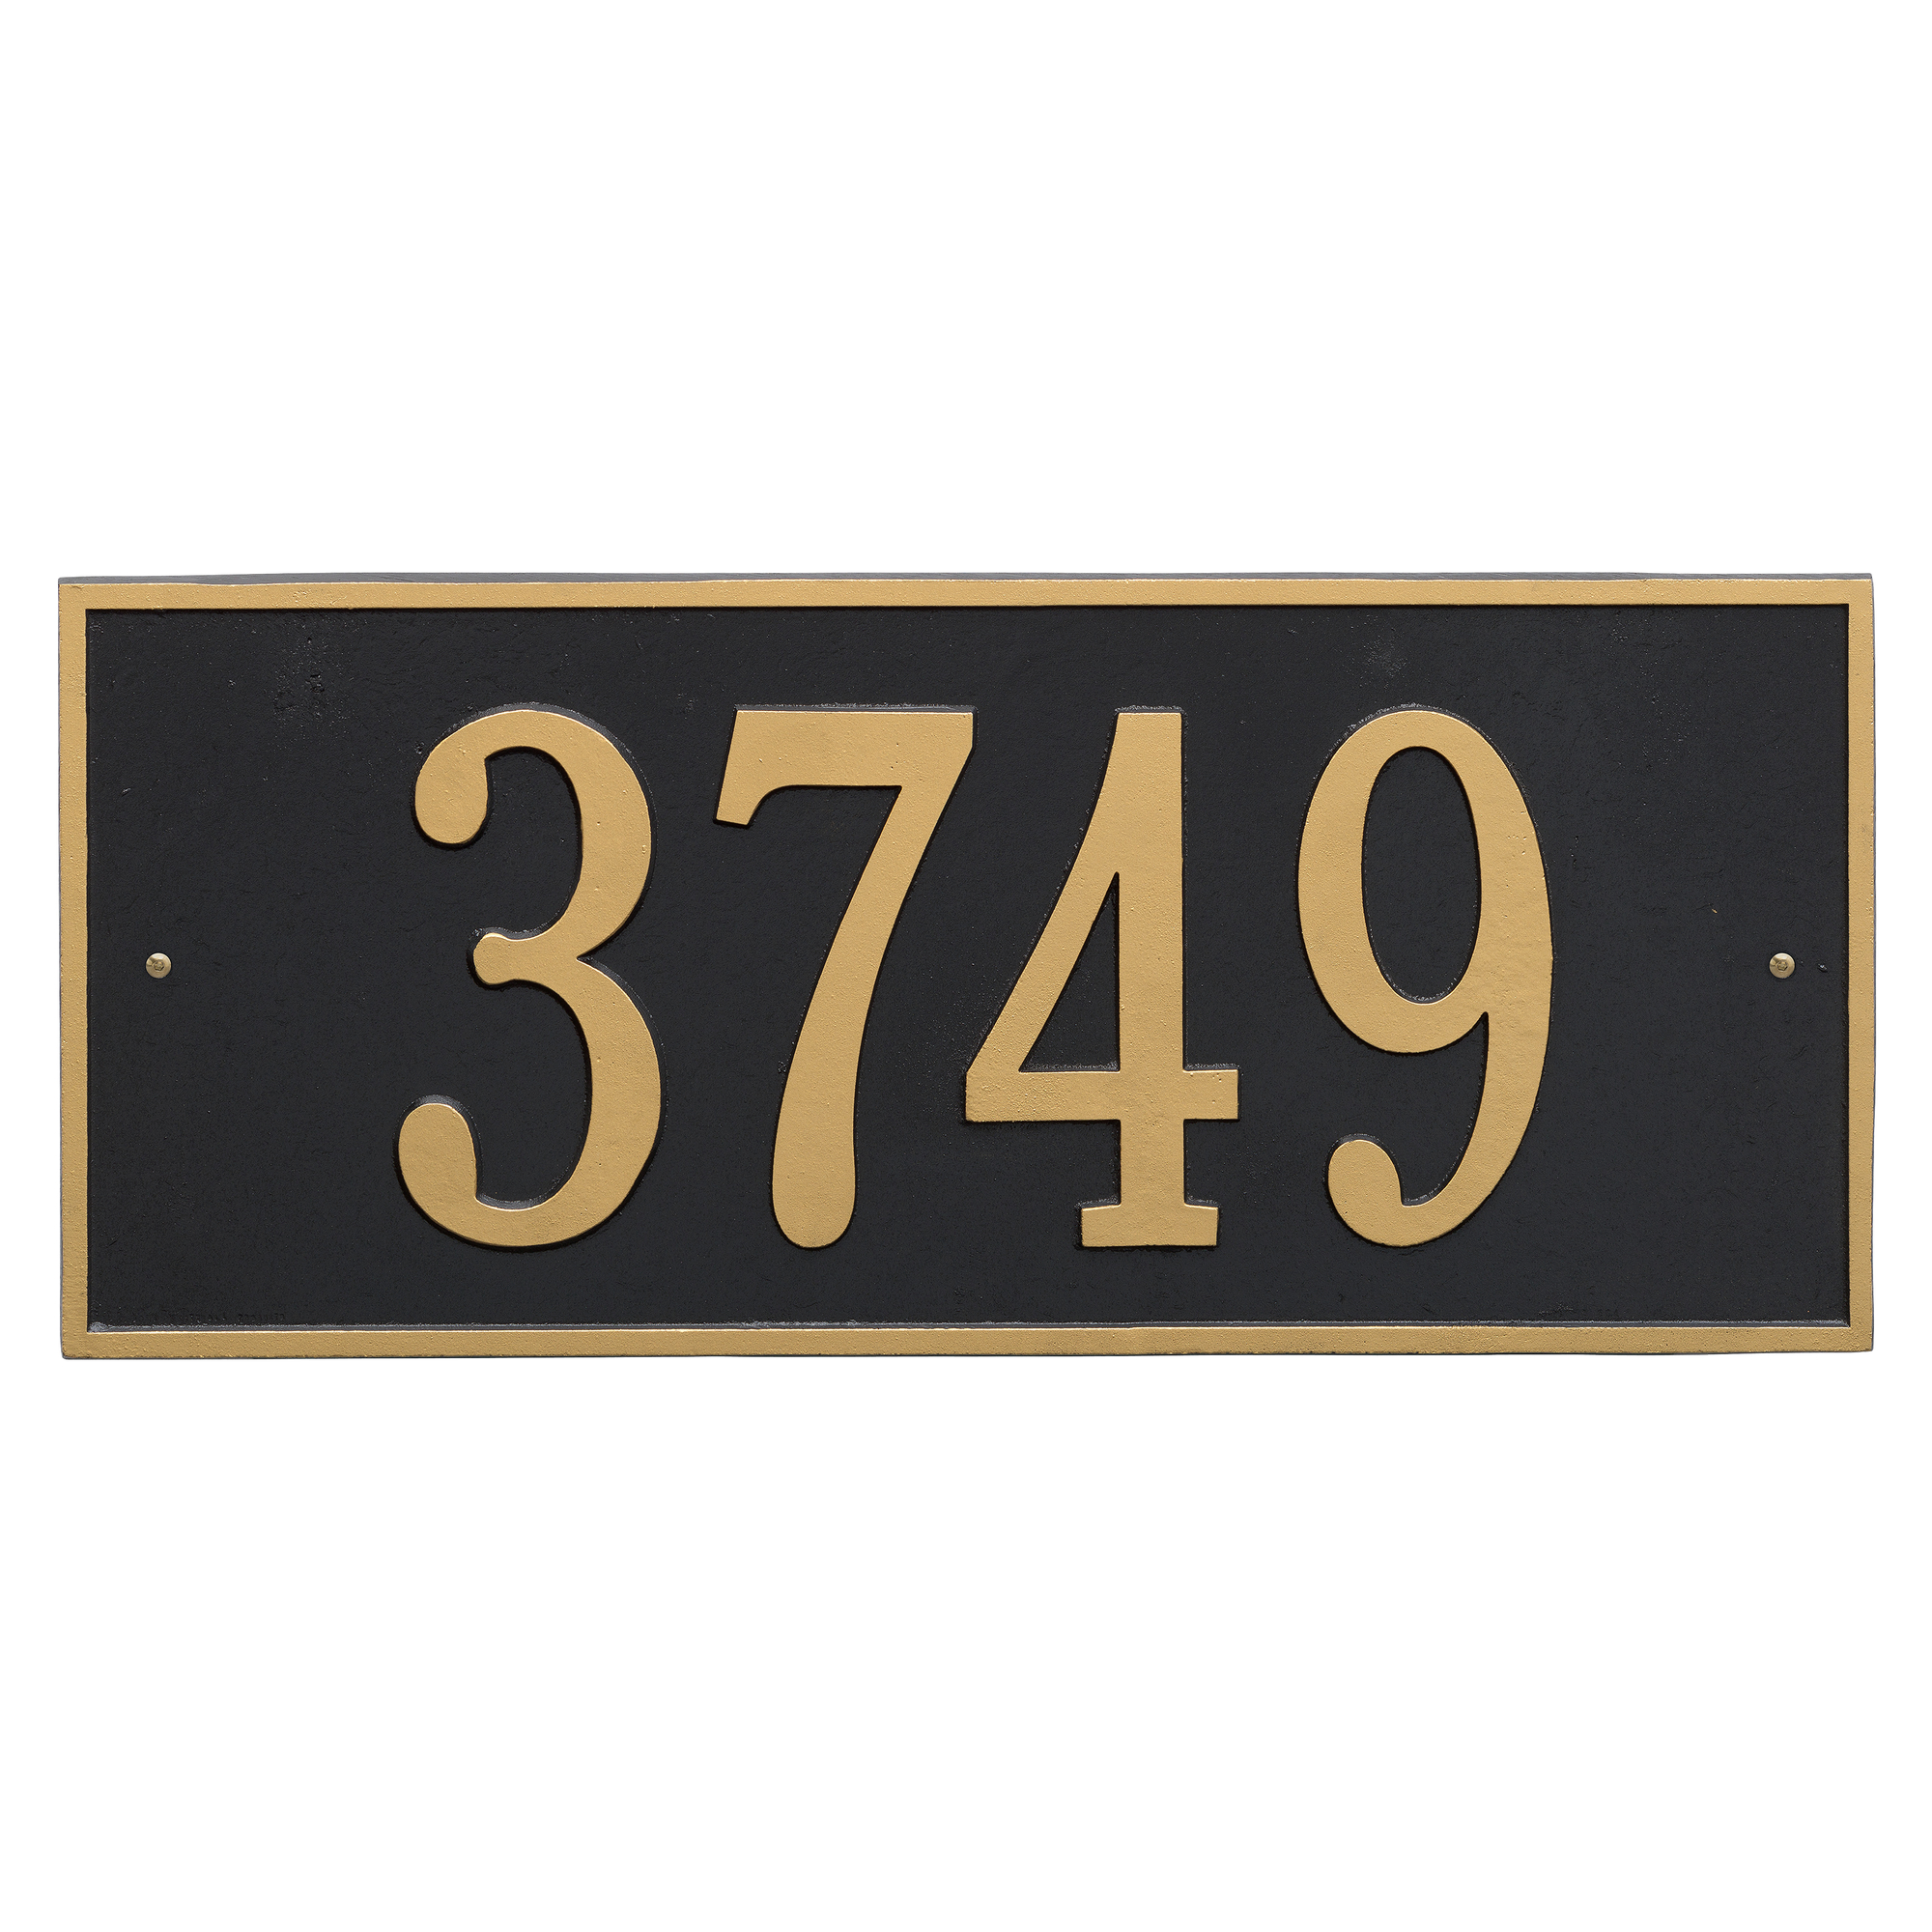 Personalized Hartford Rectangular Estate Wall 1-Line Address Plaque in Black & Gold by Whitehall